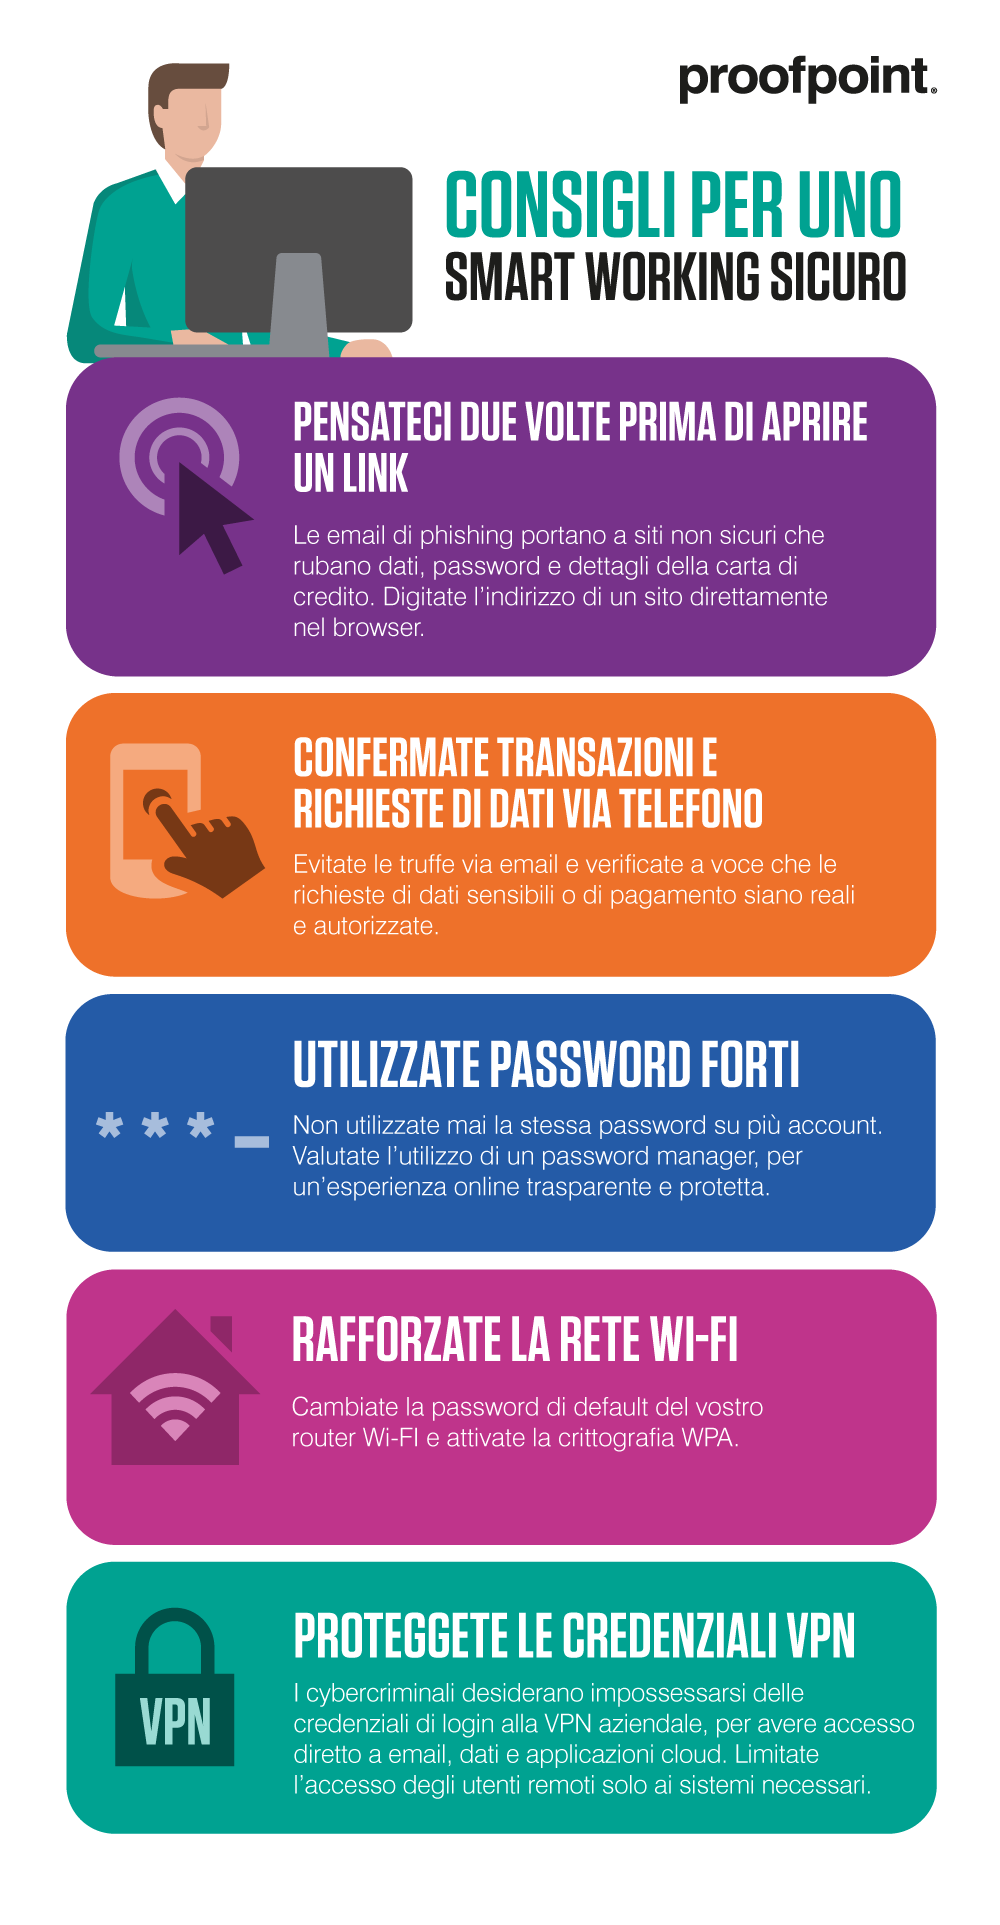 smartworking sicuro infografica proofpoint